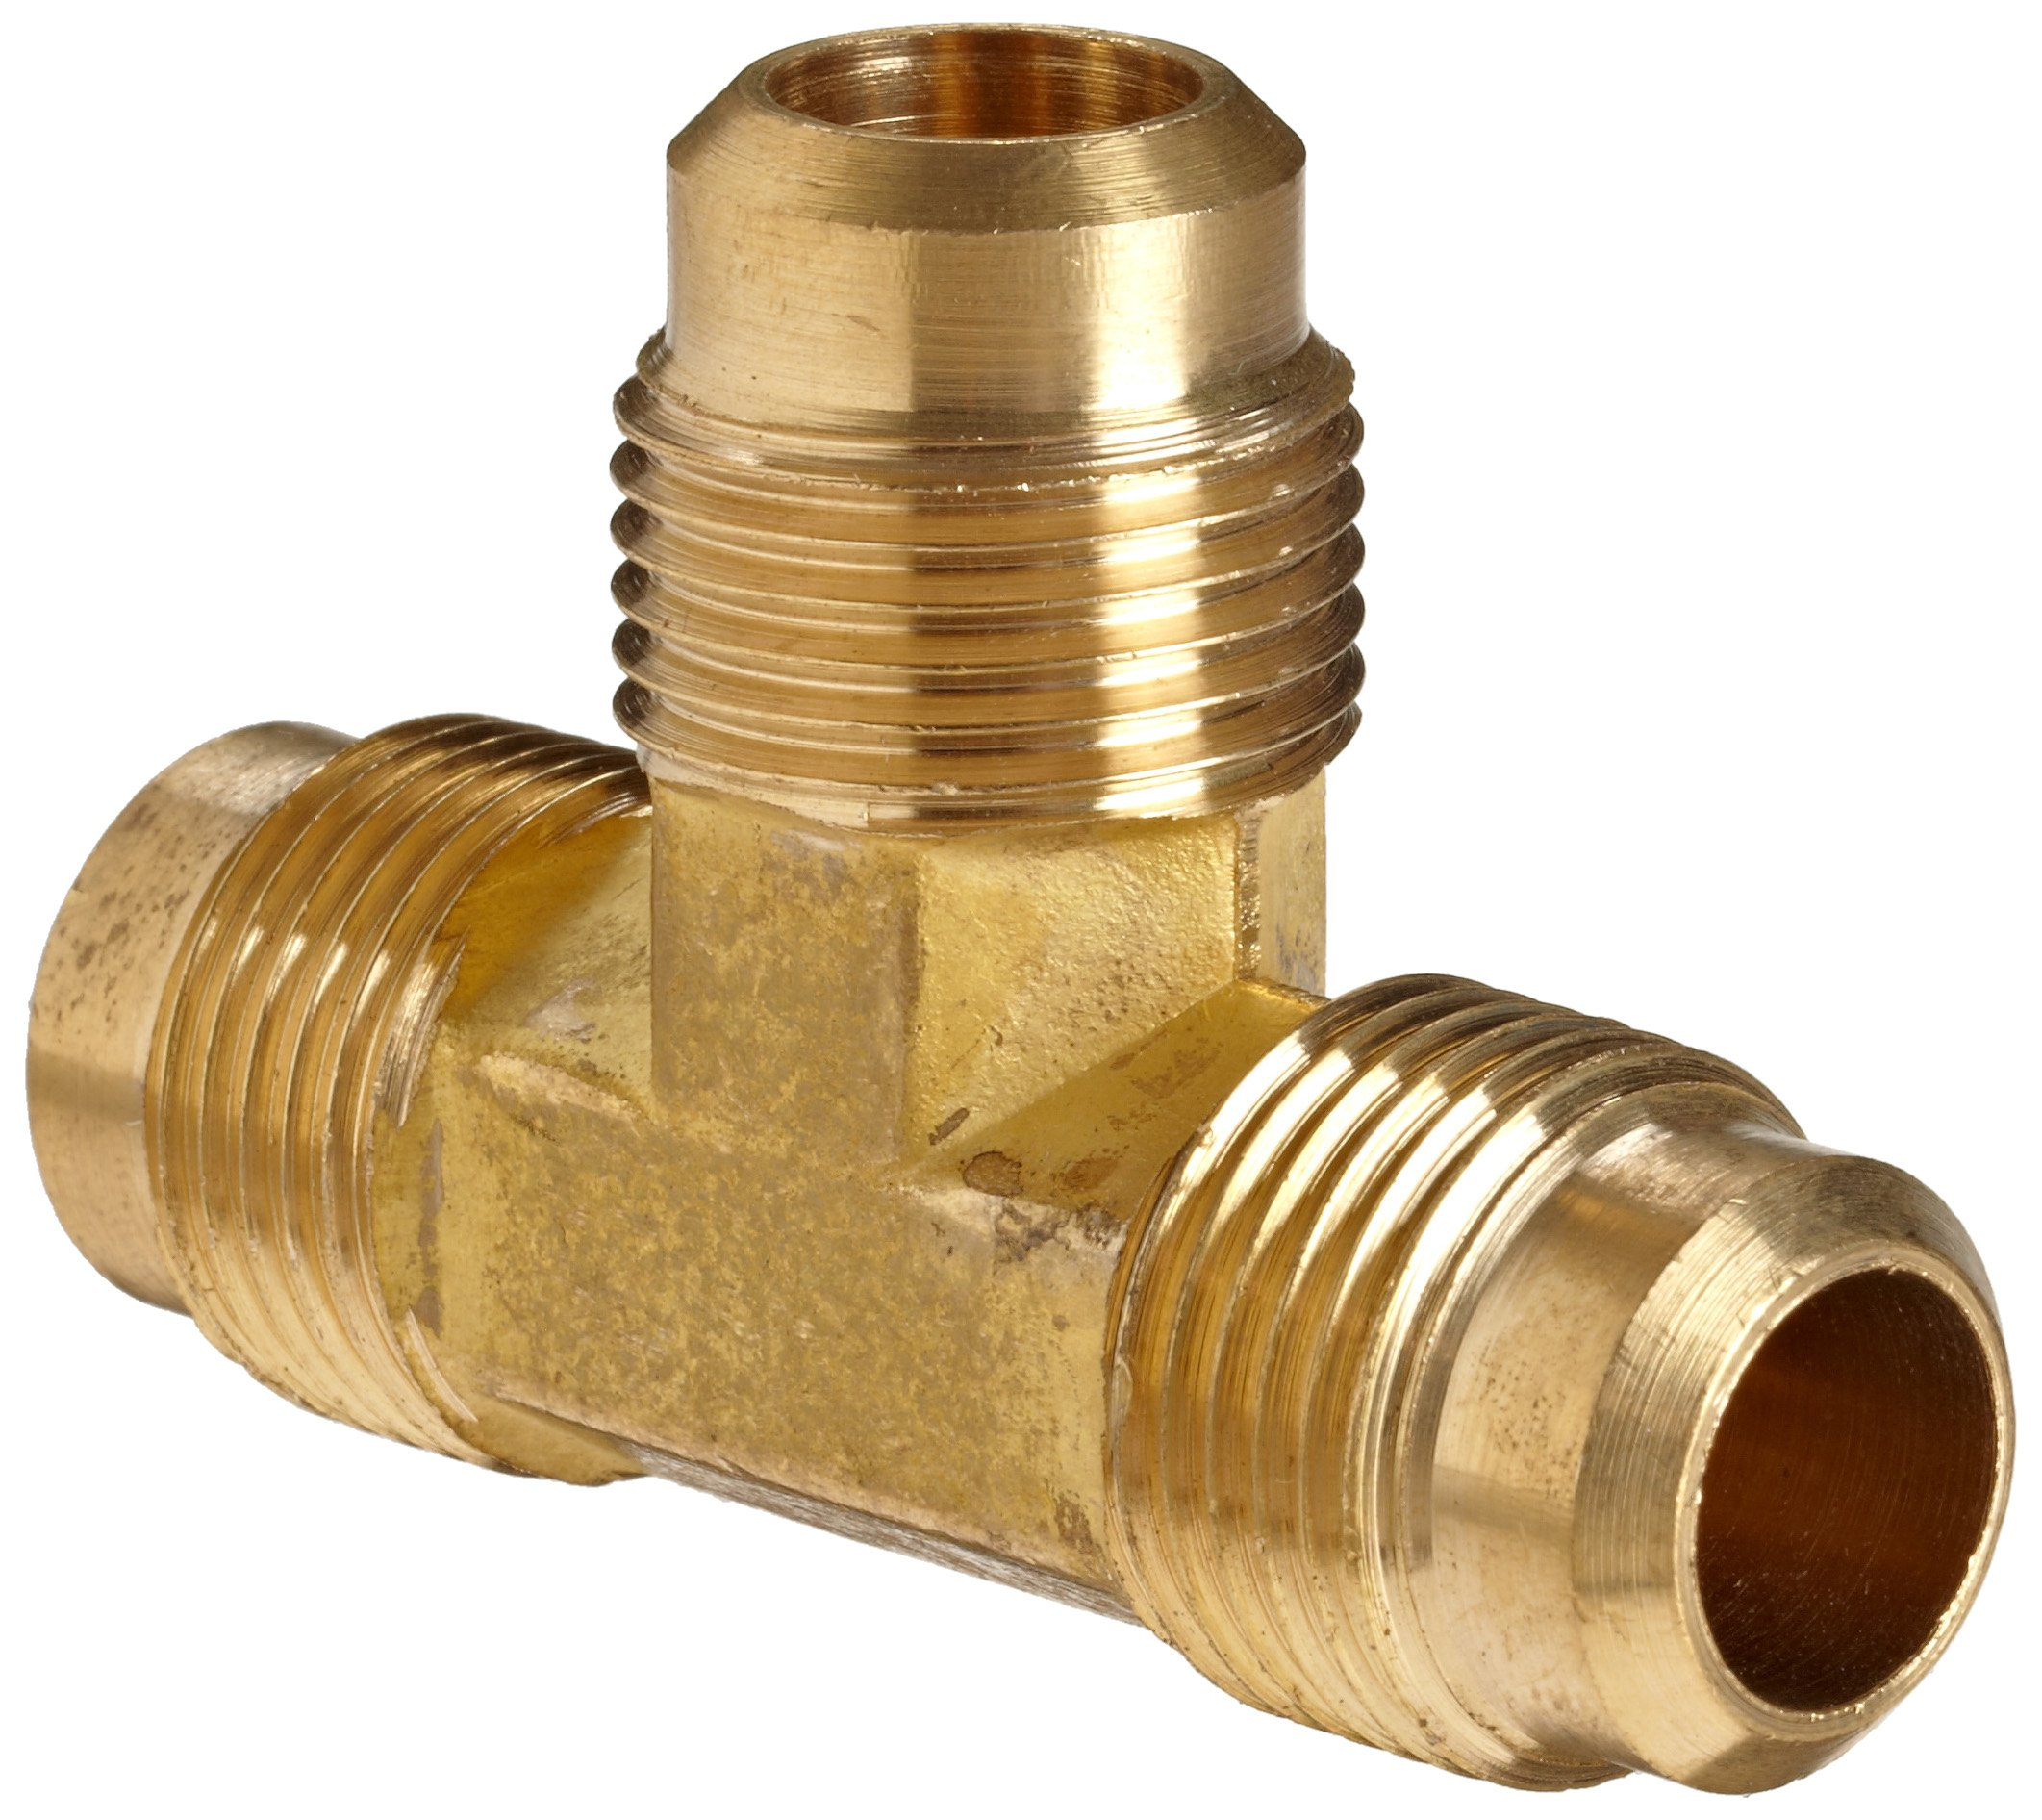 Anderson Metals Brass Tube Fitting, Flare Tee, 3/4'' x 3/4'' x 3/4'' Flare